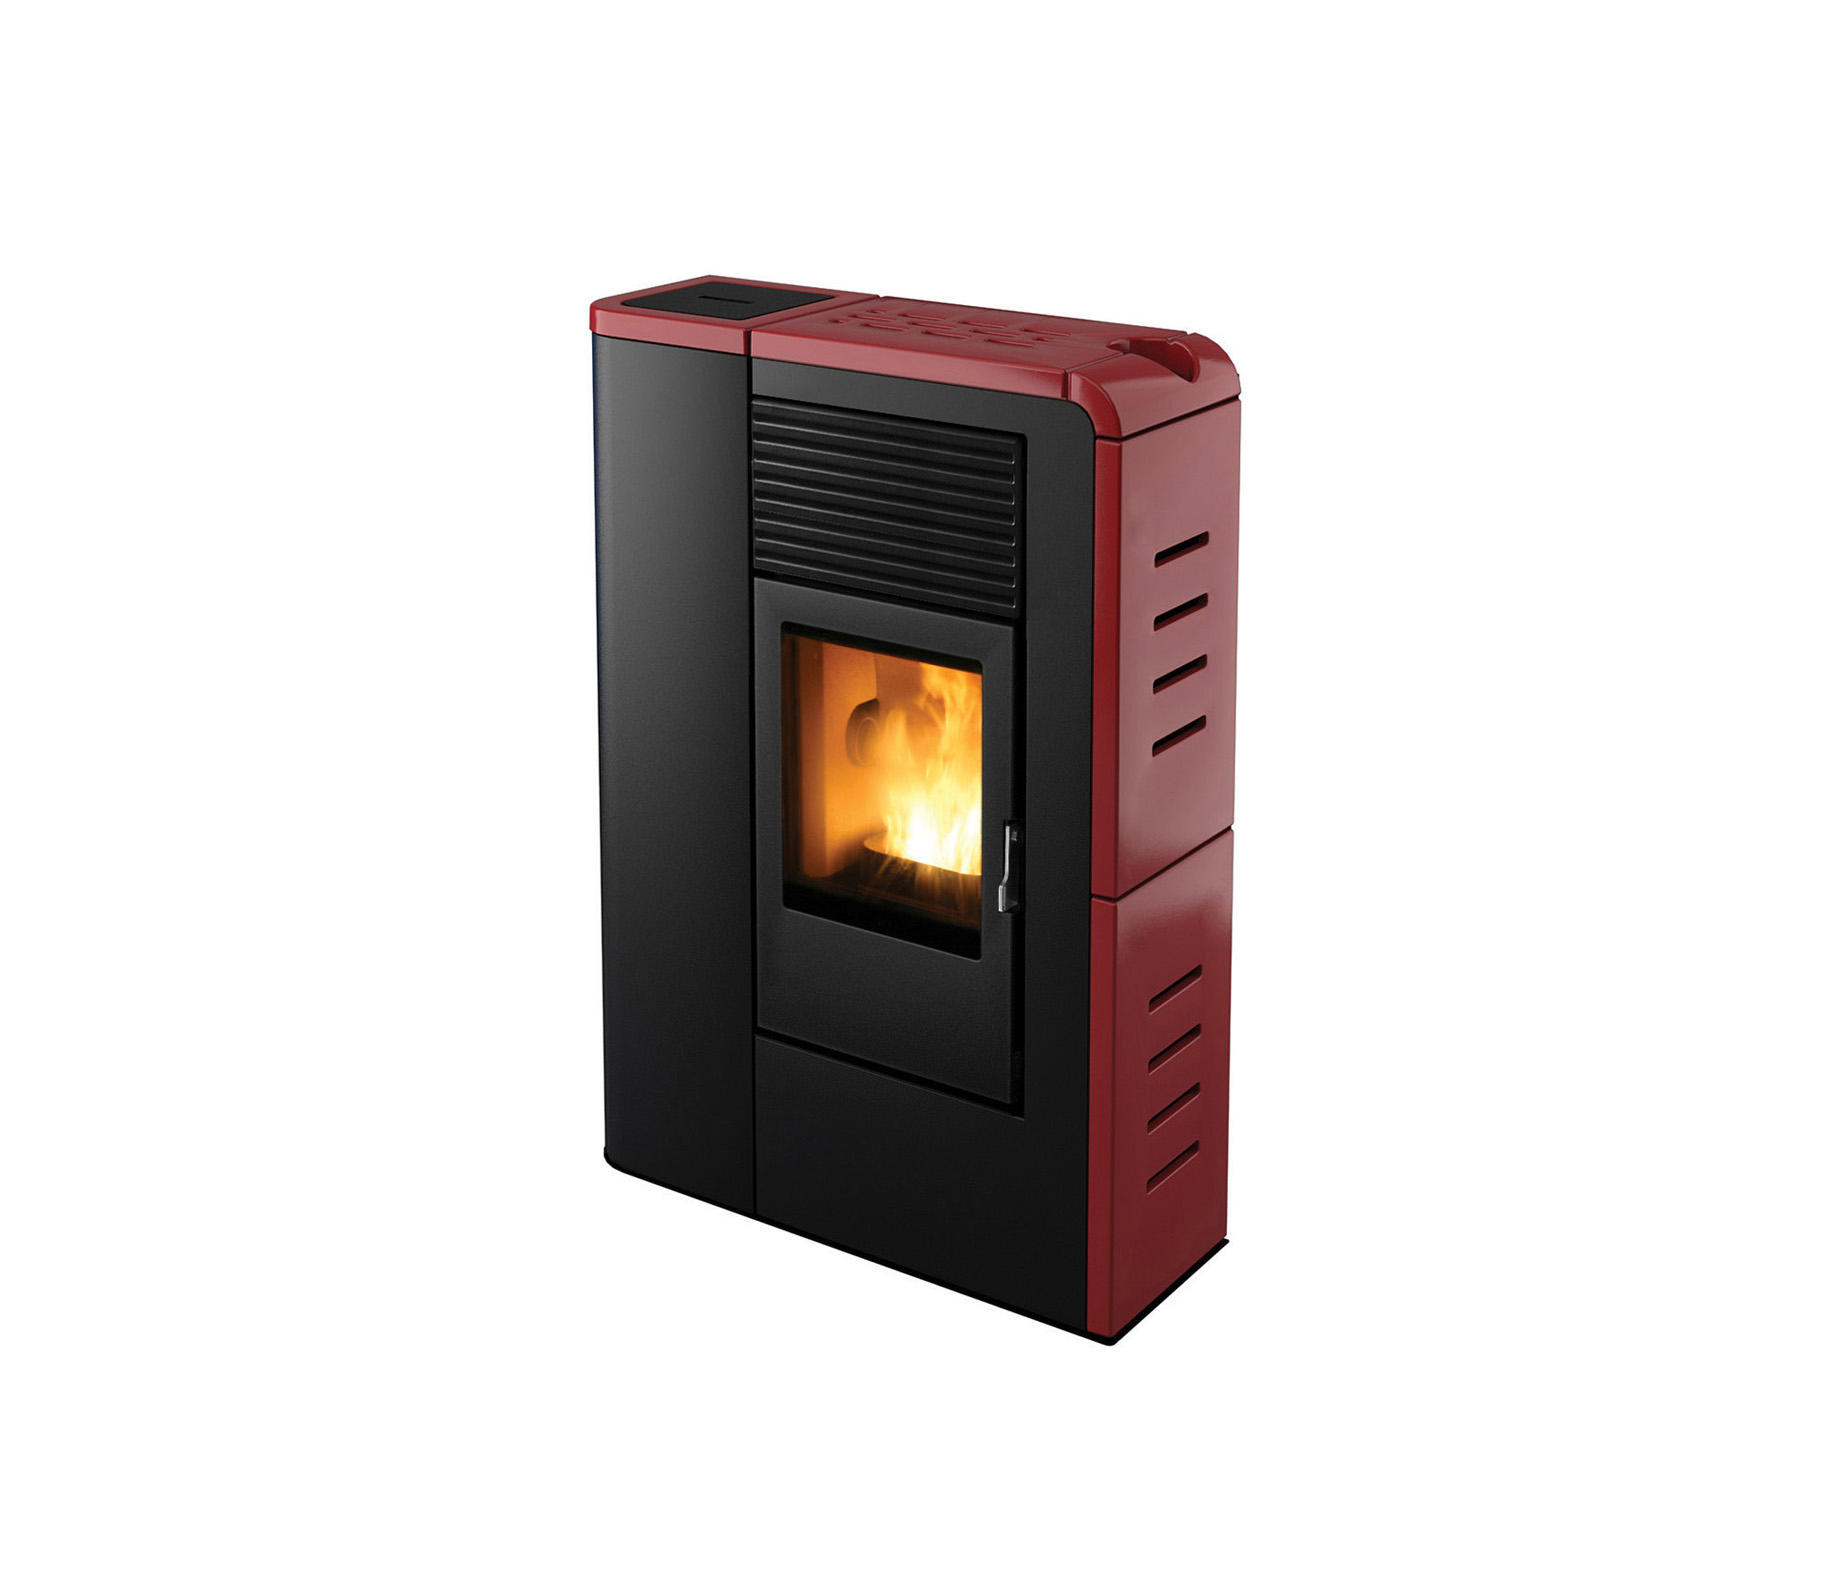 Mcz Pellet Flat Pellet Stoves From Mcz Architonic